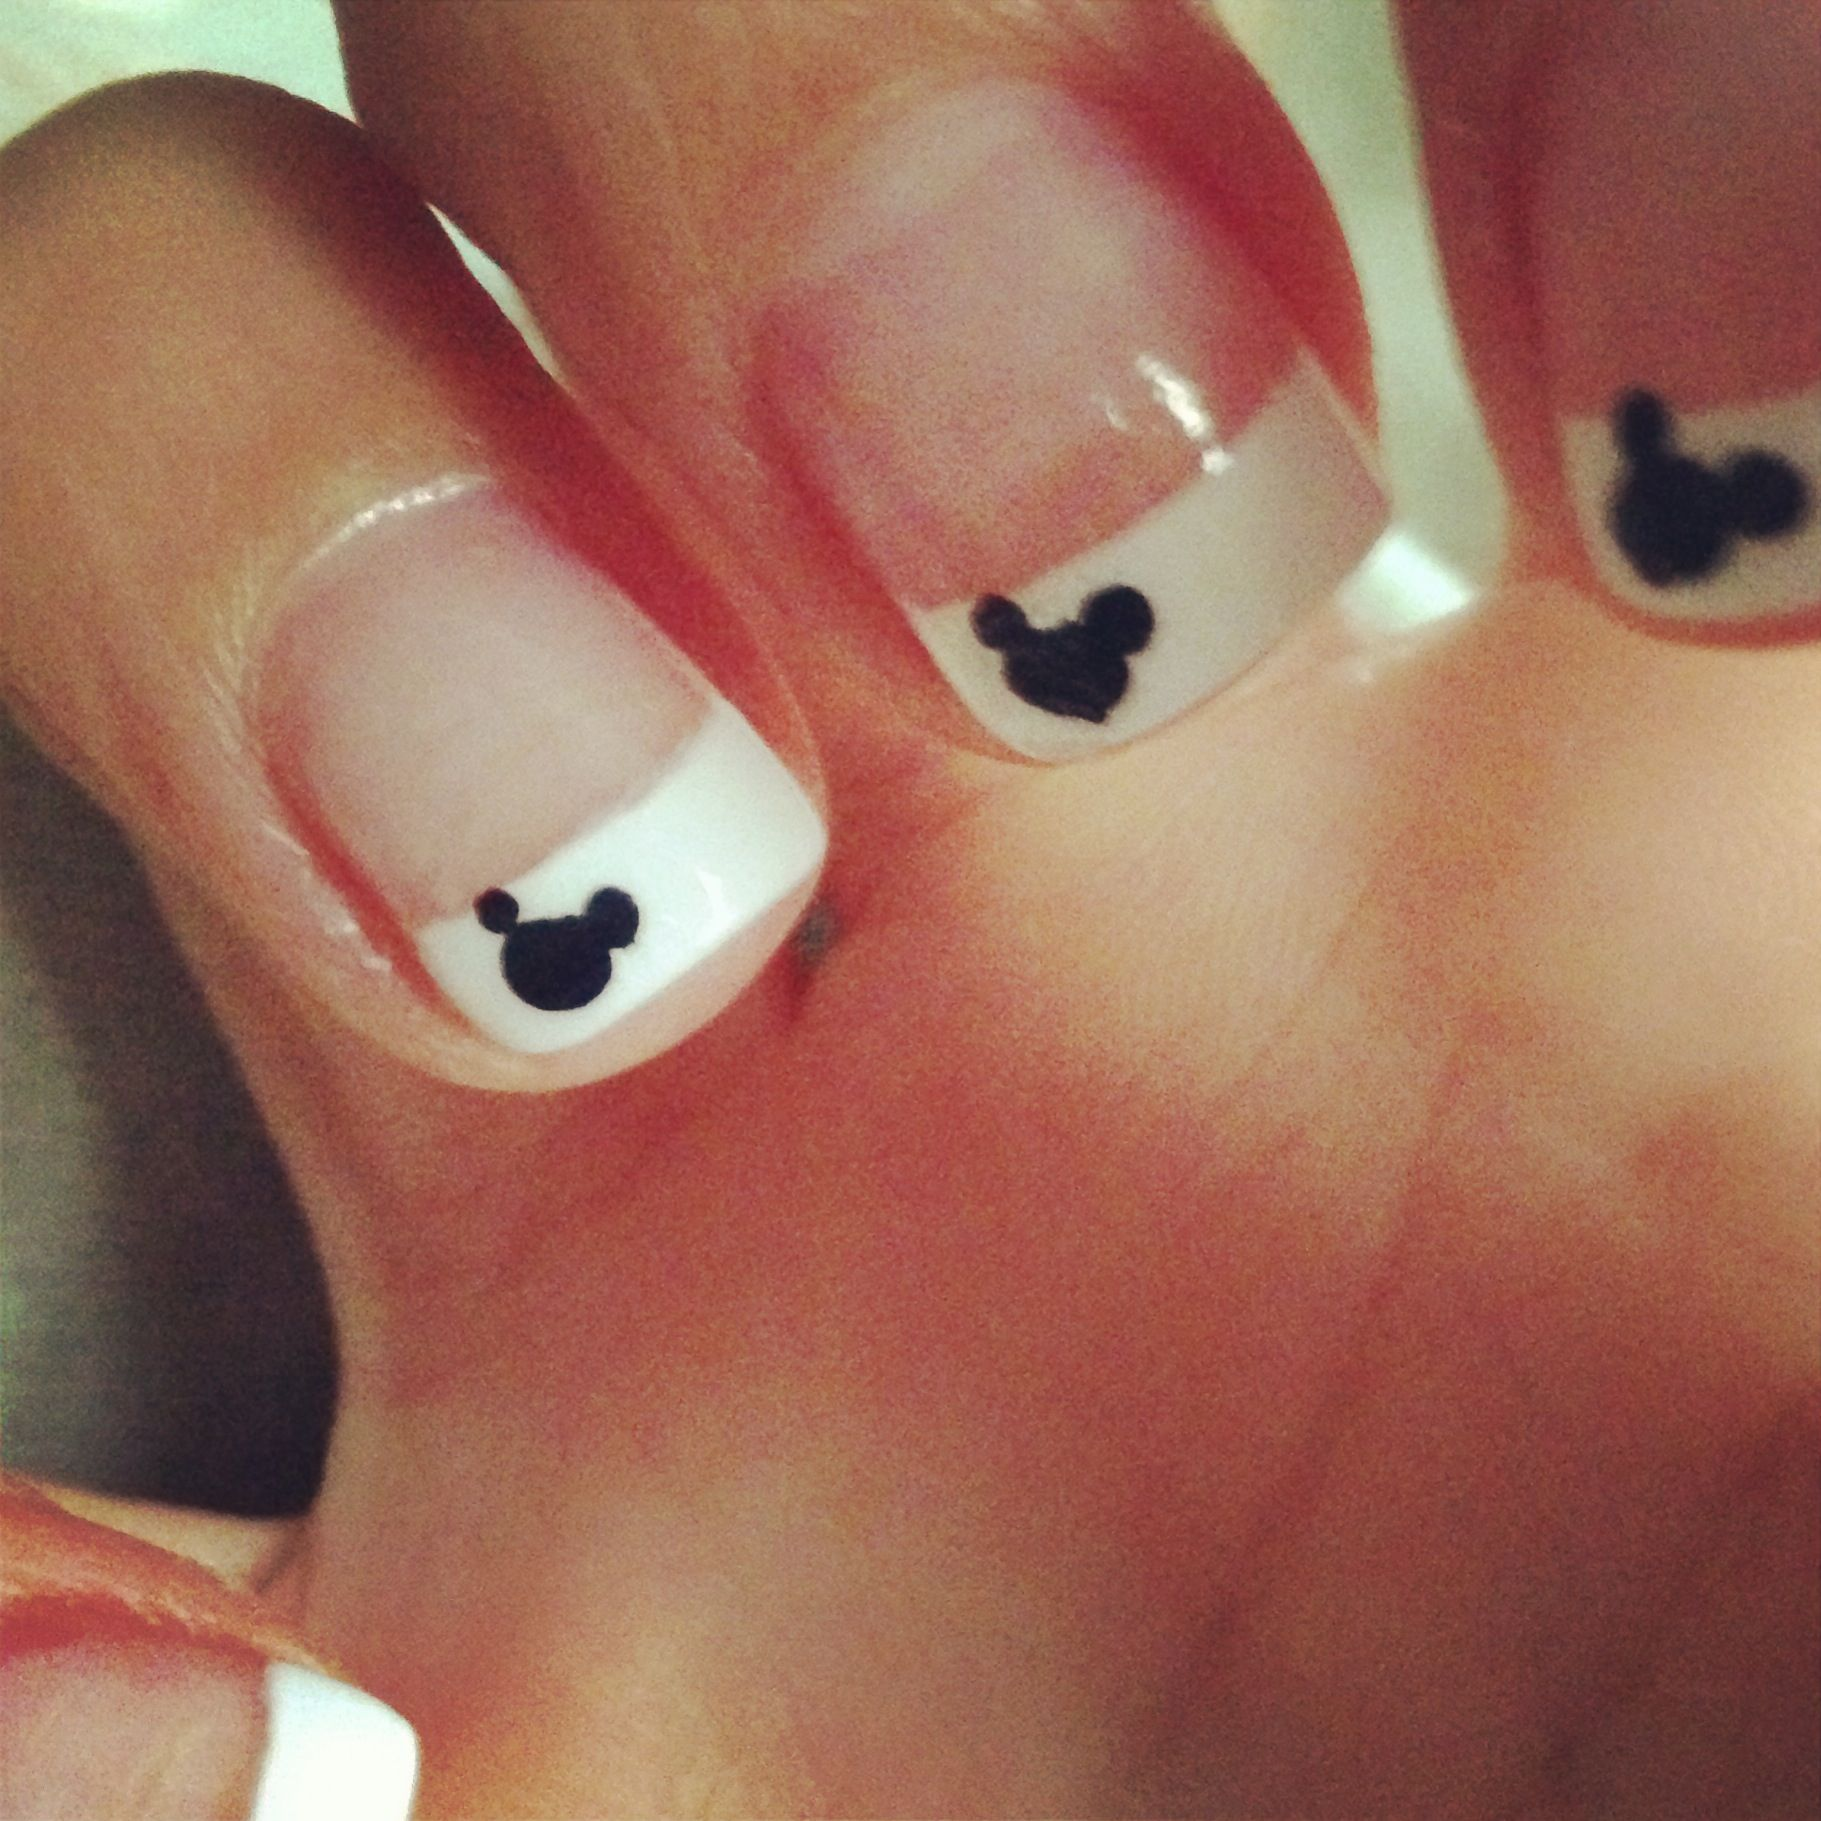 Subtle Disney nails #french #disney #mickey #nails | My stuff ...